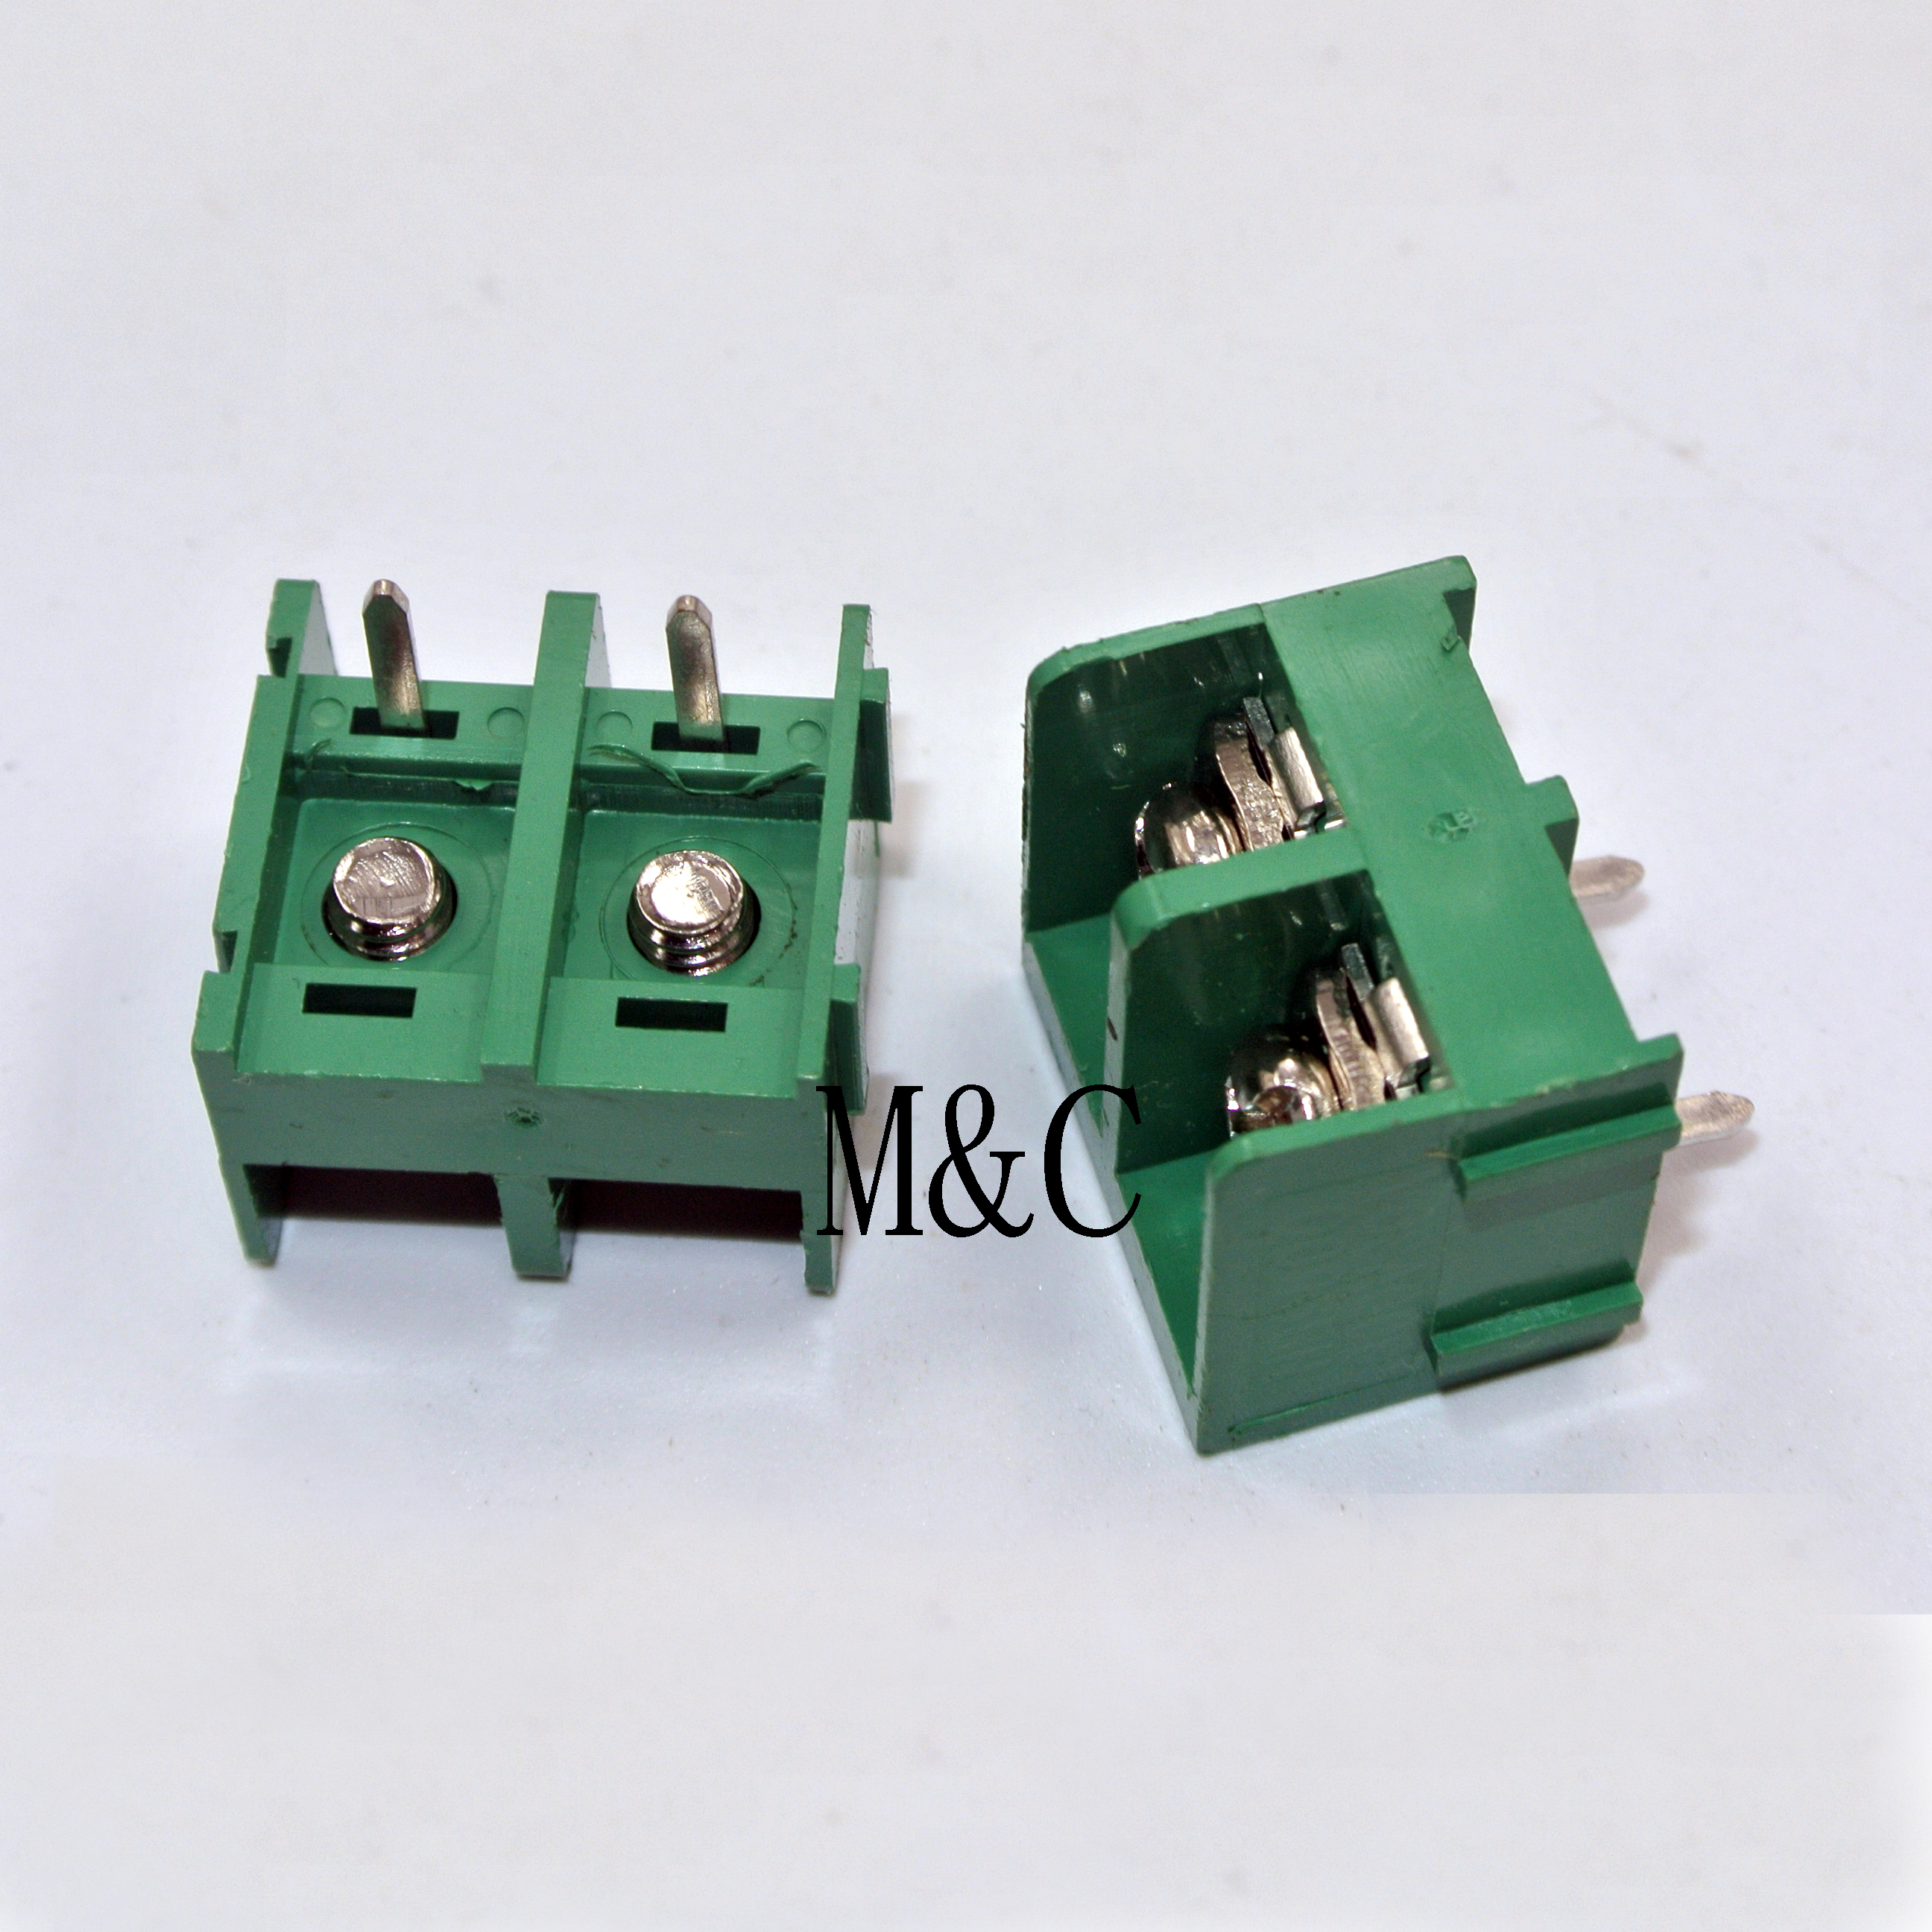 95mm 2pins Pcb Screw Terminal Block Connector Ac 300v 30a 500pcs In Phone Wiring Terminals From Home Improvement On Alibaba Group